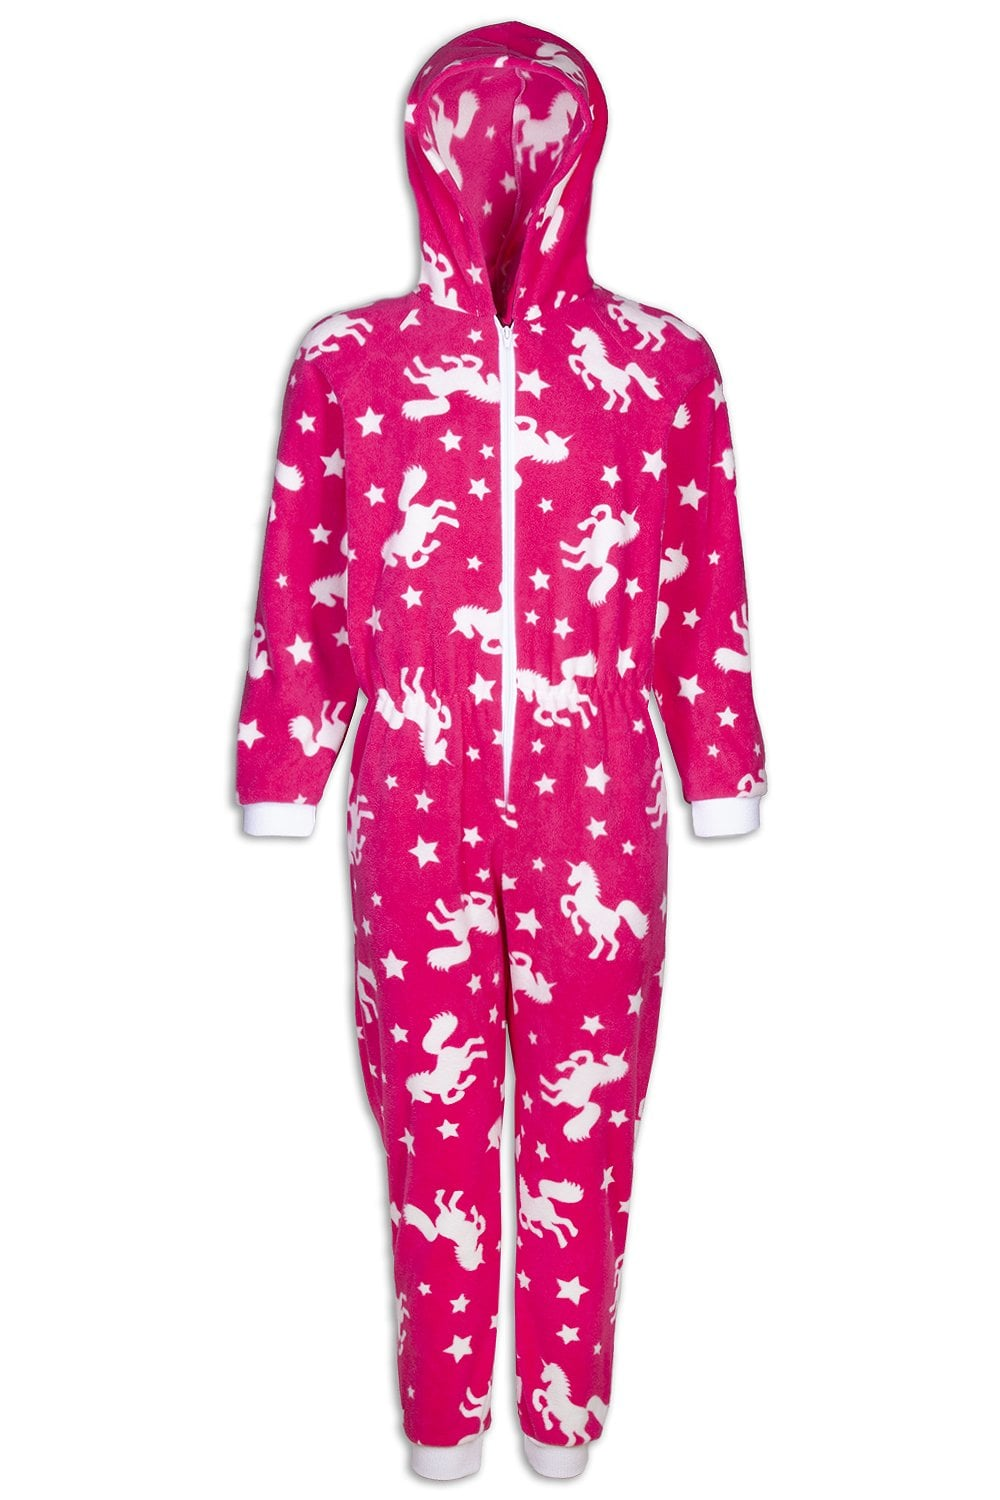 83e40770905a Camille Childrens Pink Unicorn Print Fleece All In One Pyjama Onesie